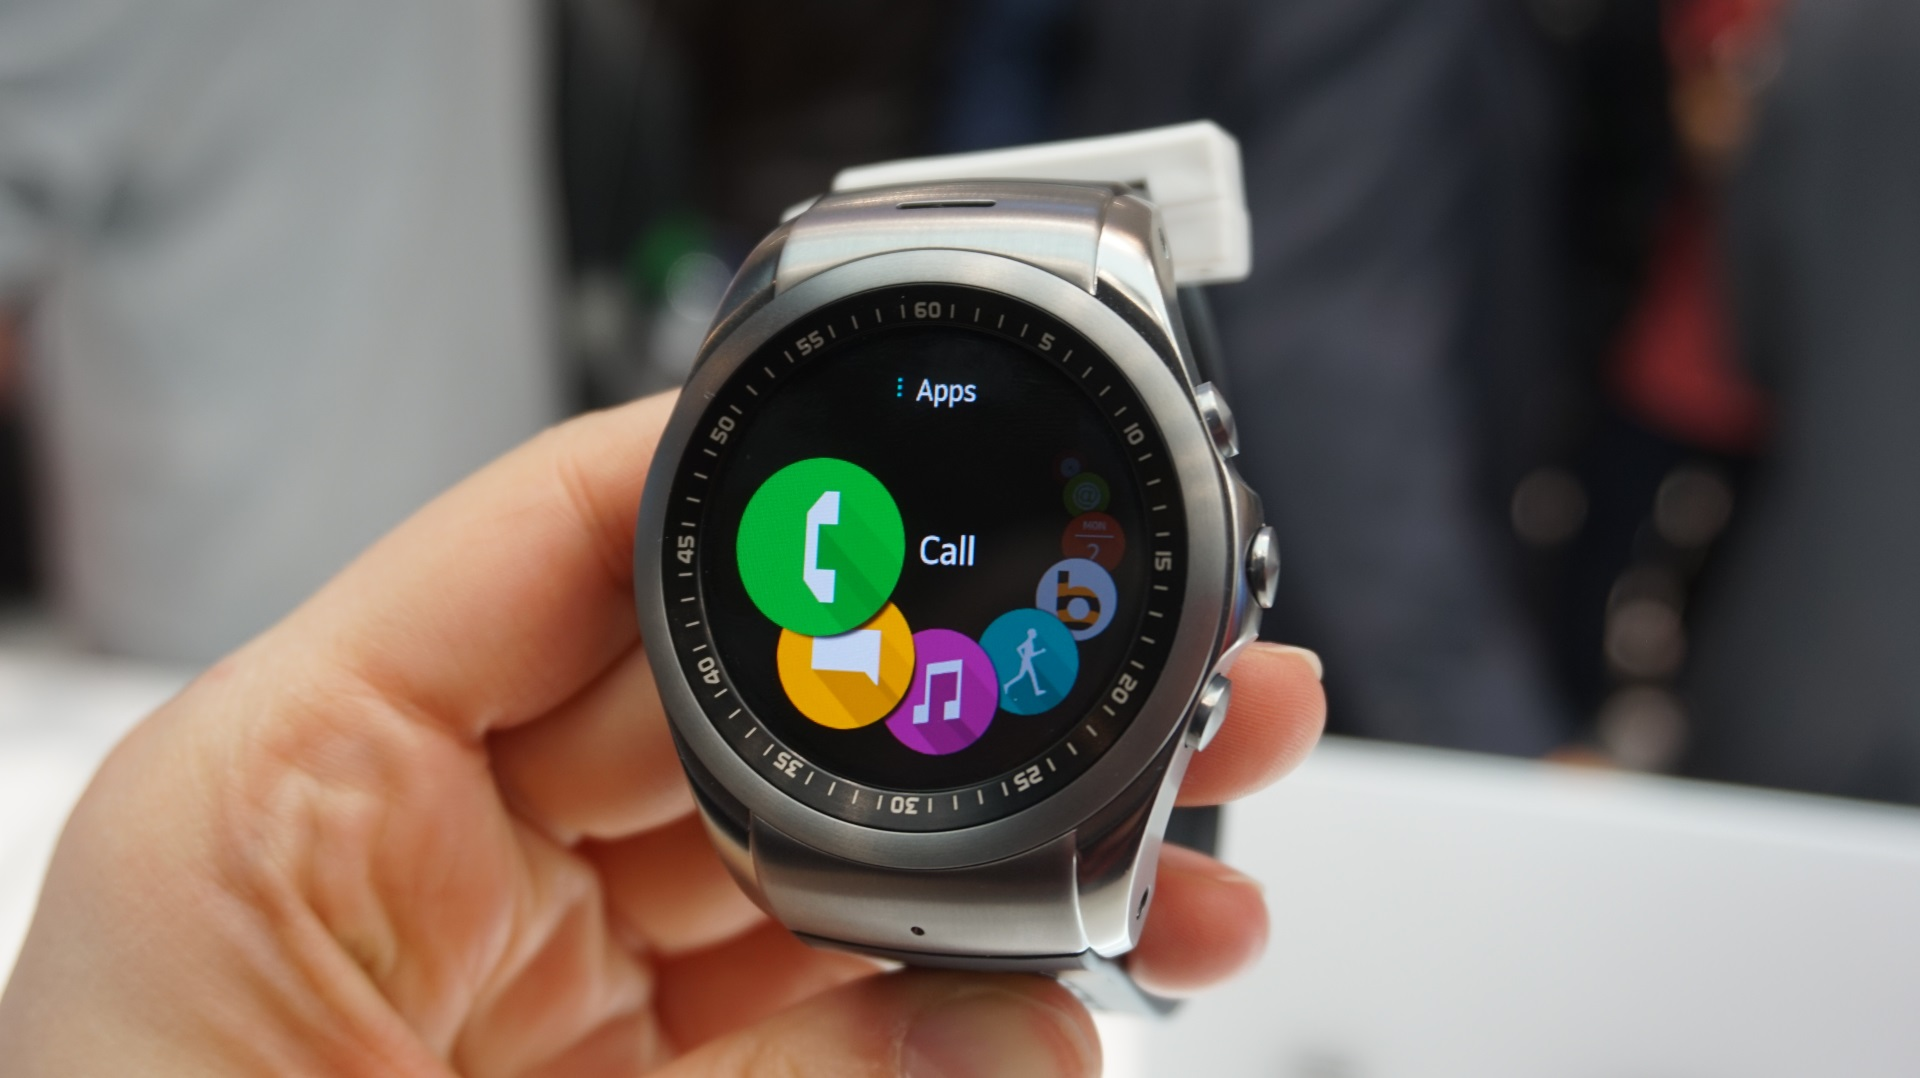 LG Watch Urbane Review